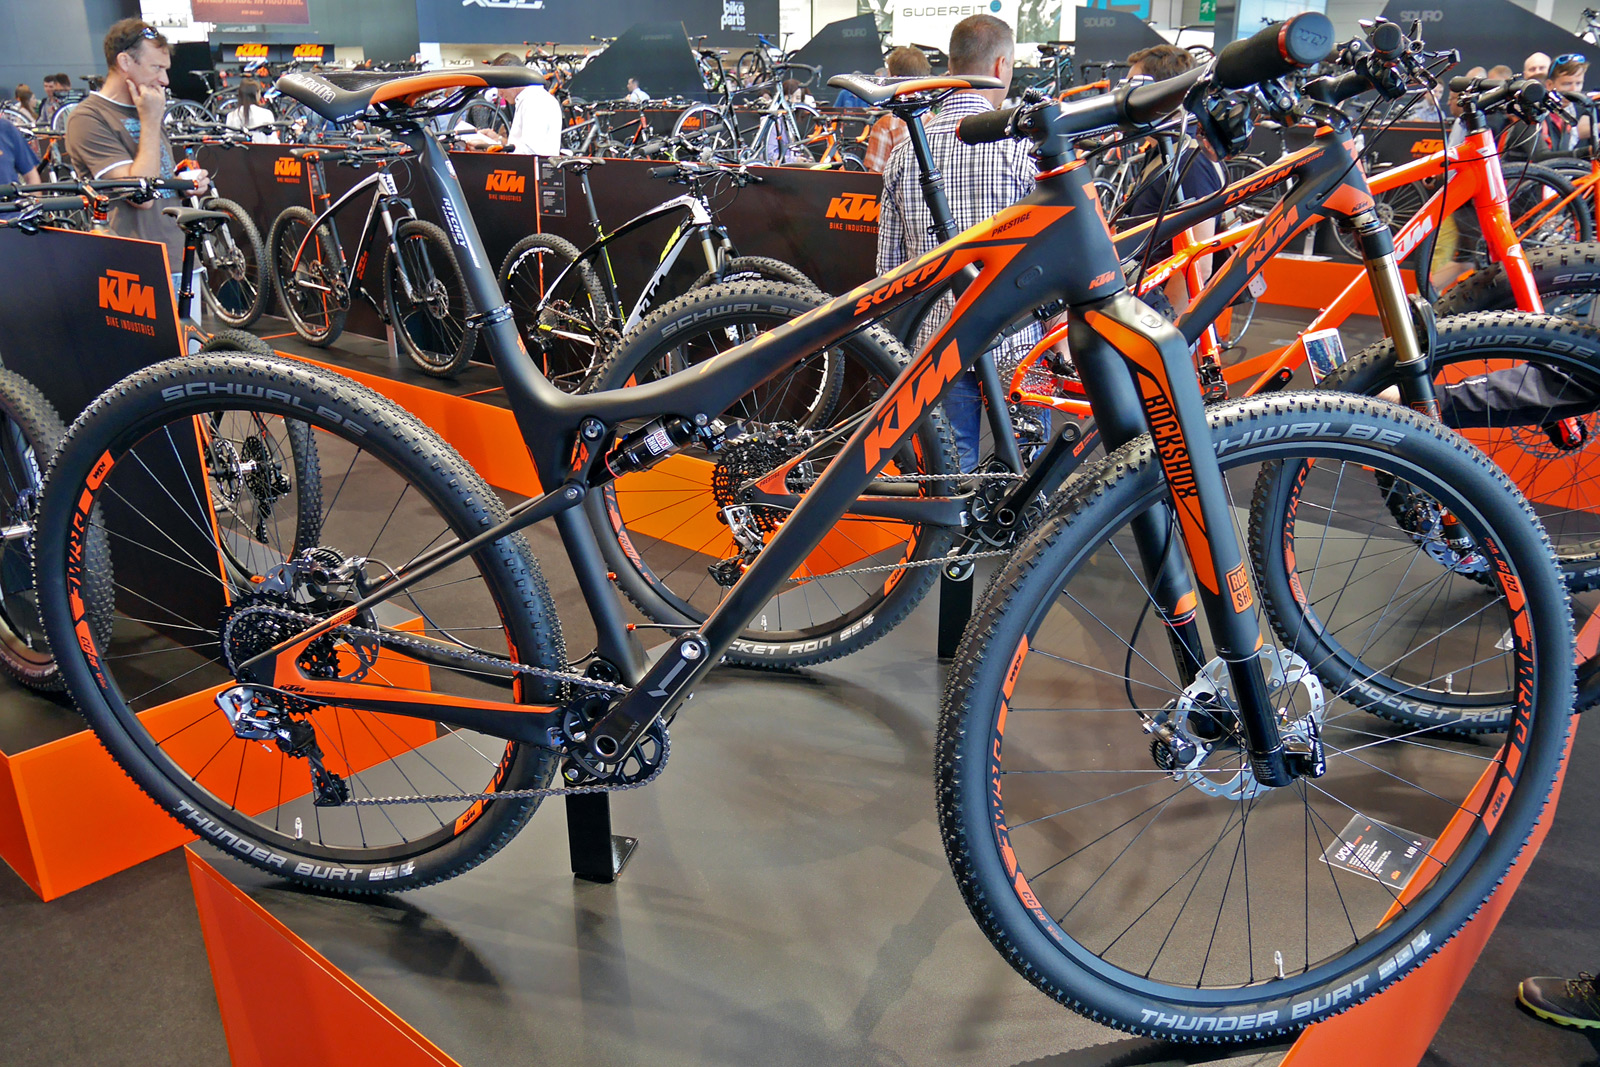 eb15 ktm updates mountain bikes with straight line link suspension boost plus and more. Black Bedroom Furniture Sets. Home Design Ideas